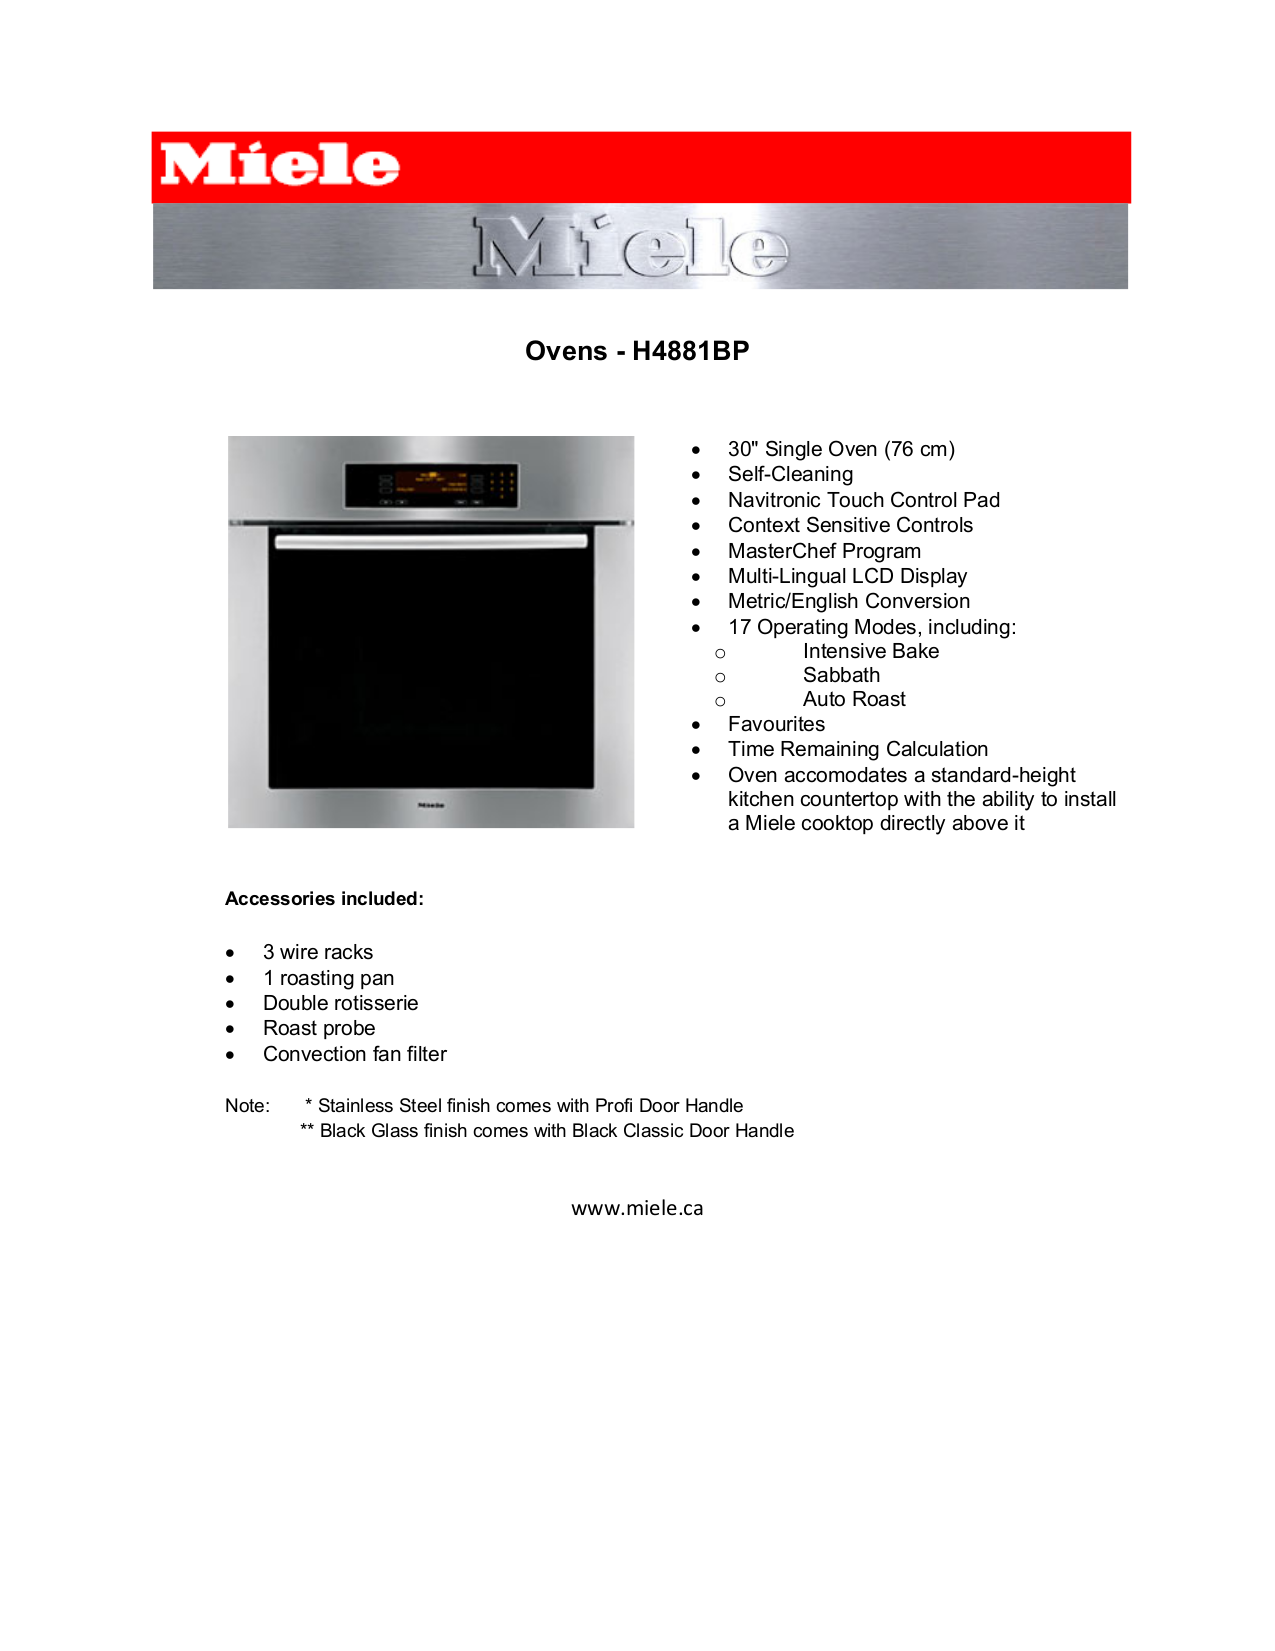 Download Miele Owner Manual